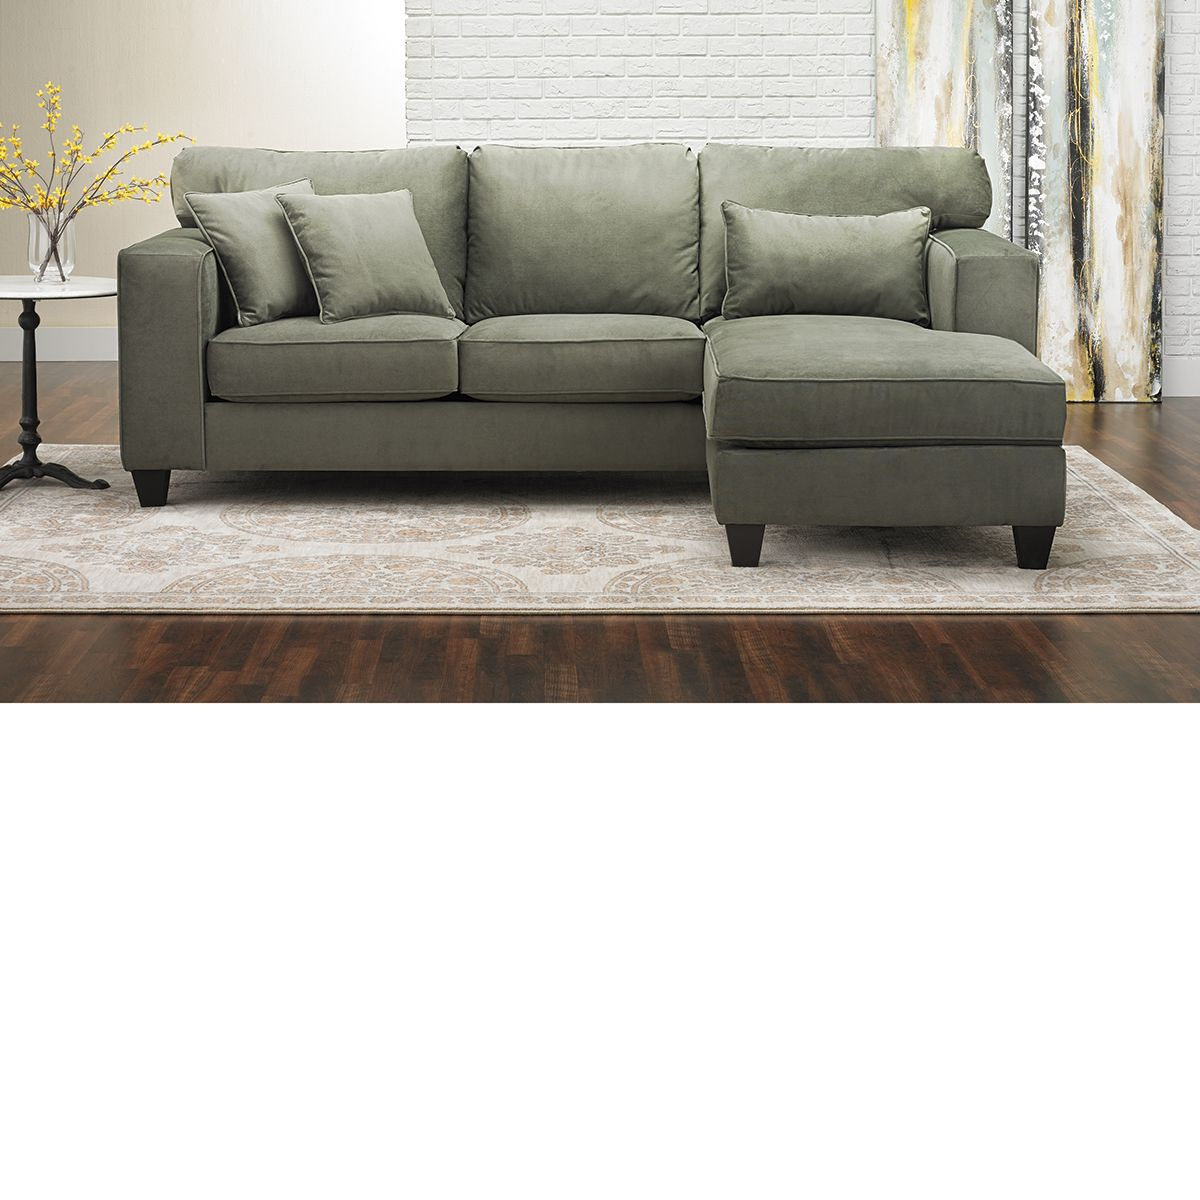 Null Modular Sectional Sofa Sectional Sofa With Chaise